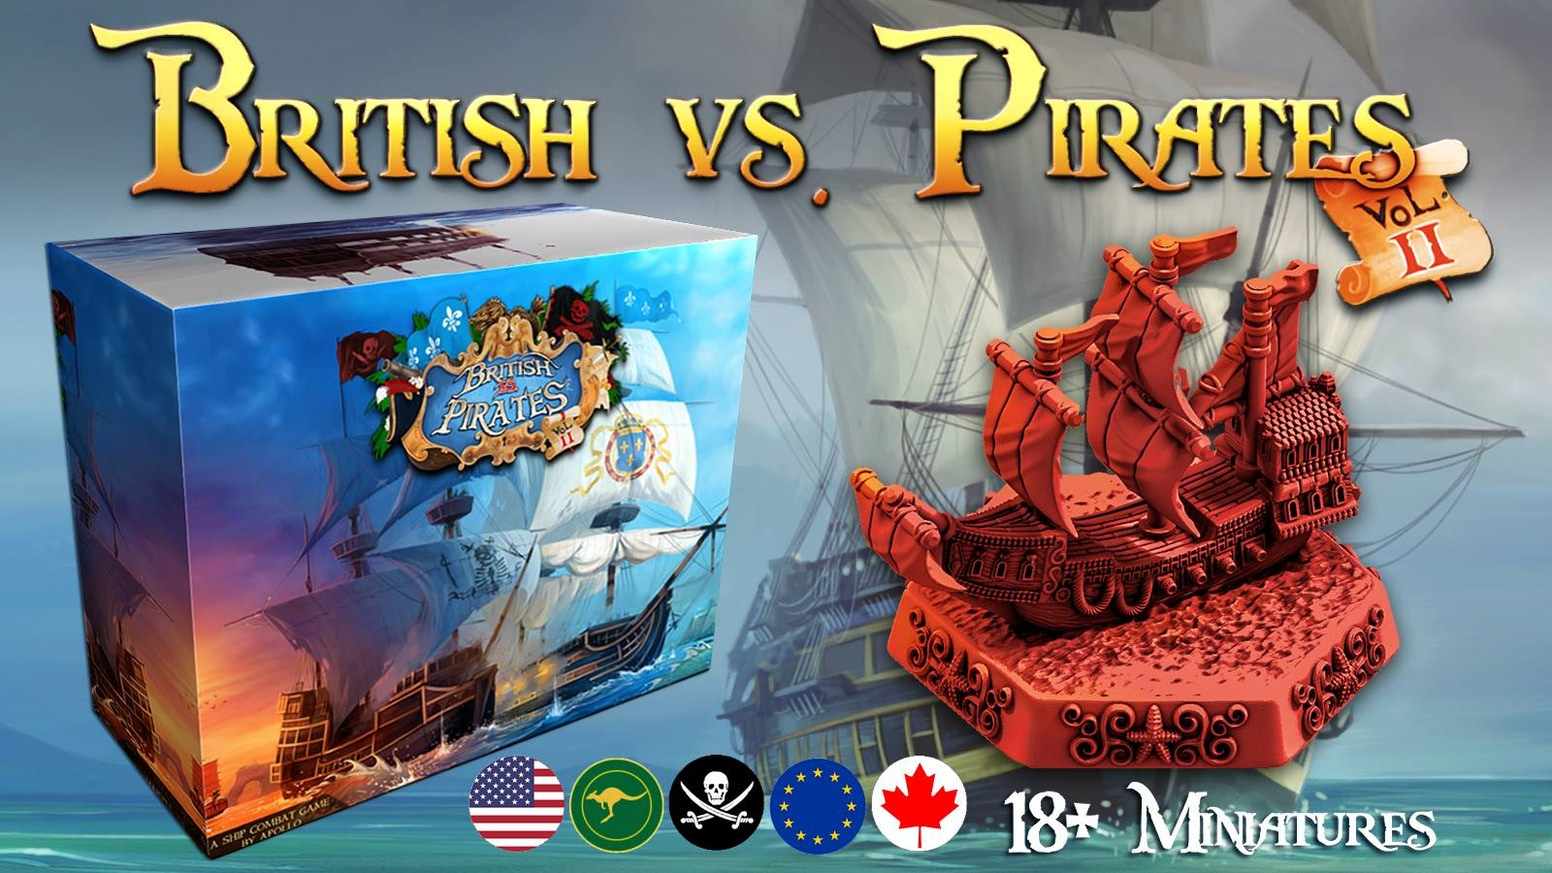 British vs Pirates Volume 2